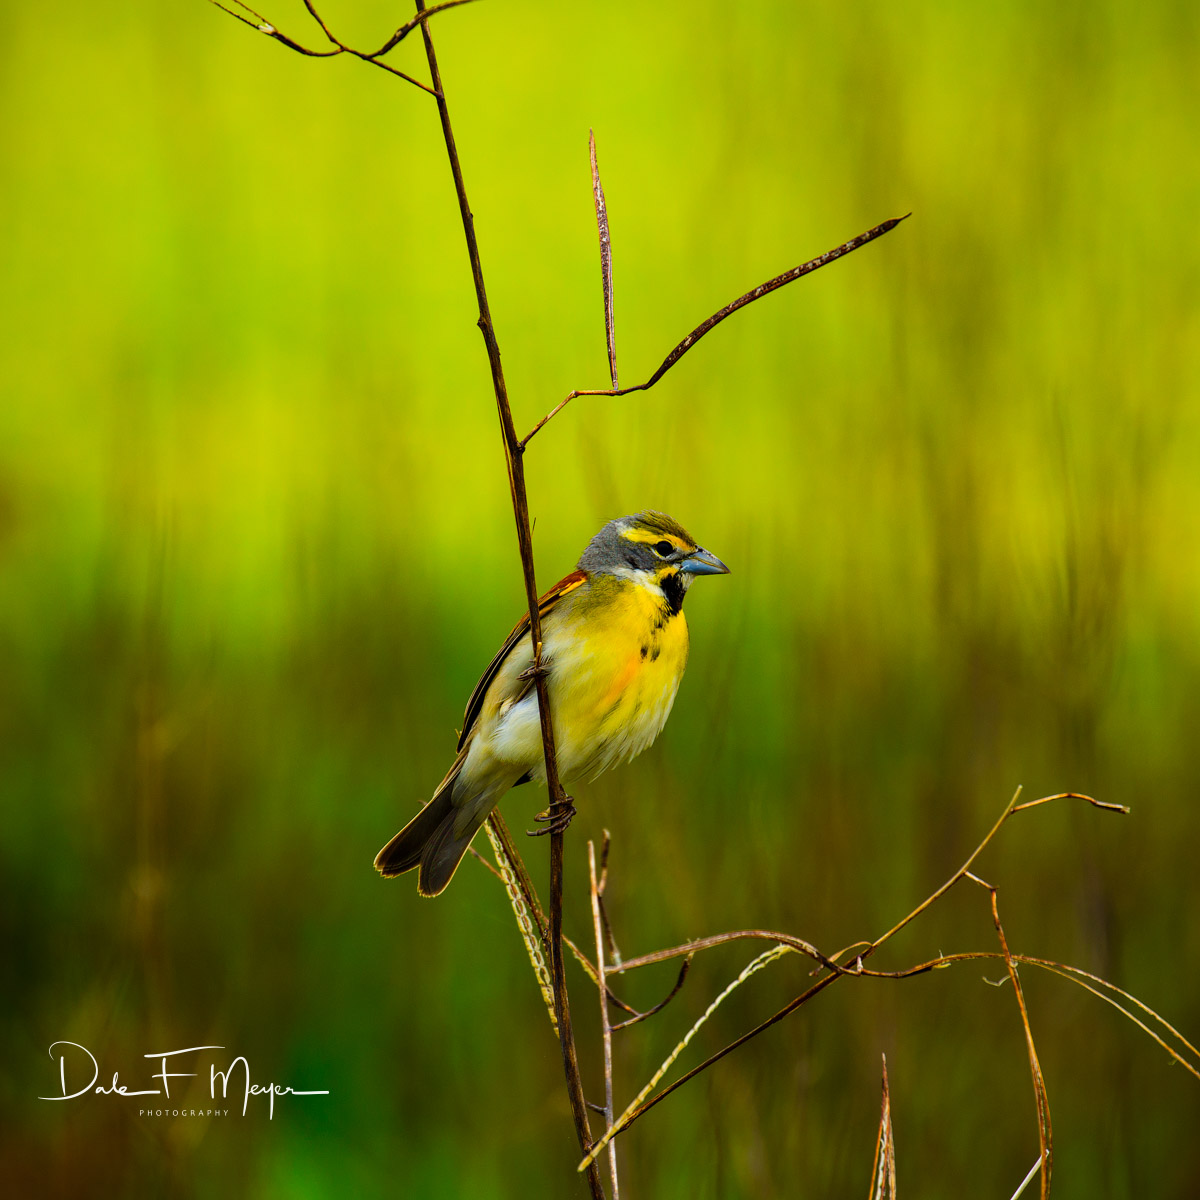 Atchafalaya River Basin Swamp, Dickcissel, Southern Places Galerie, Spring 2016, bird, photo